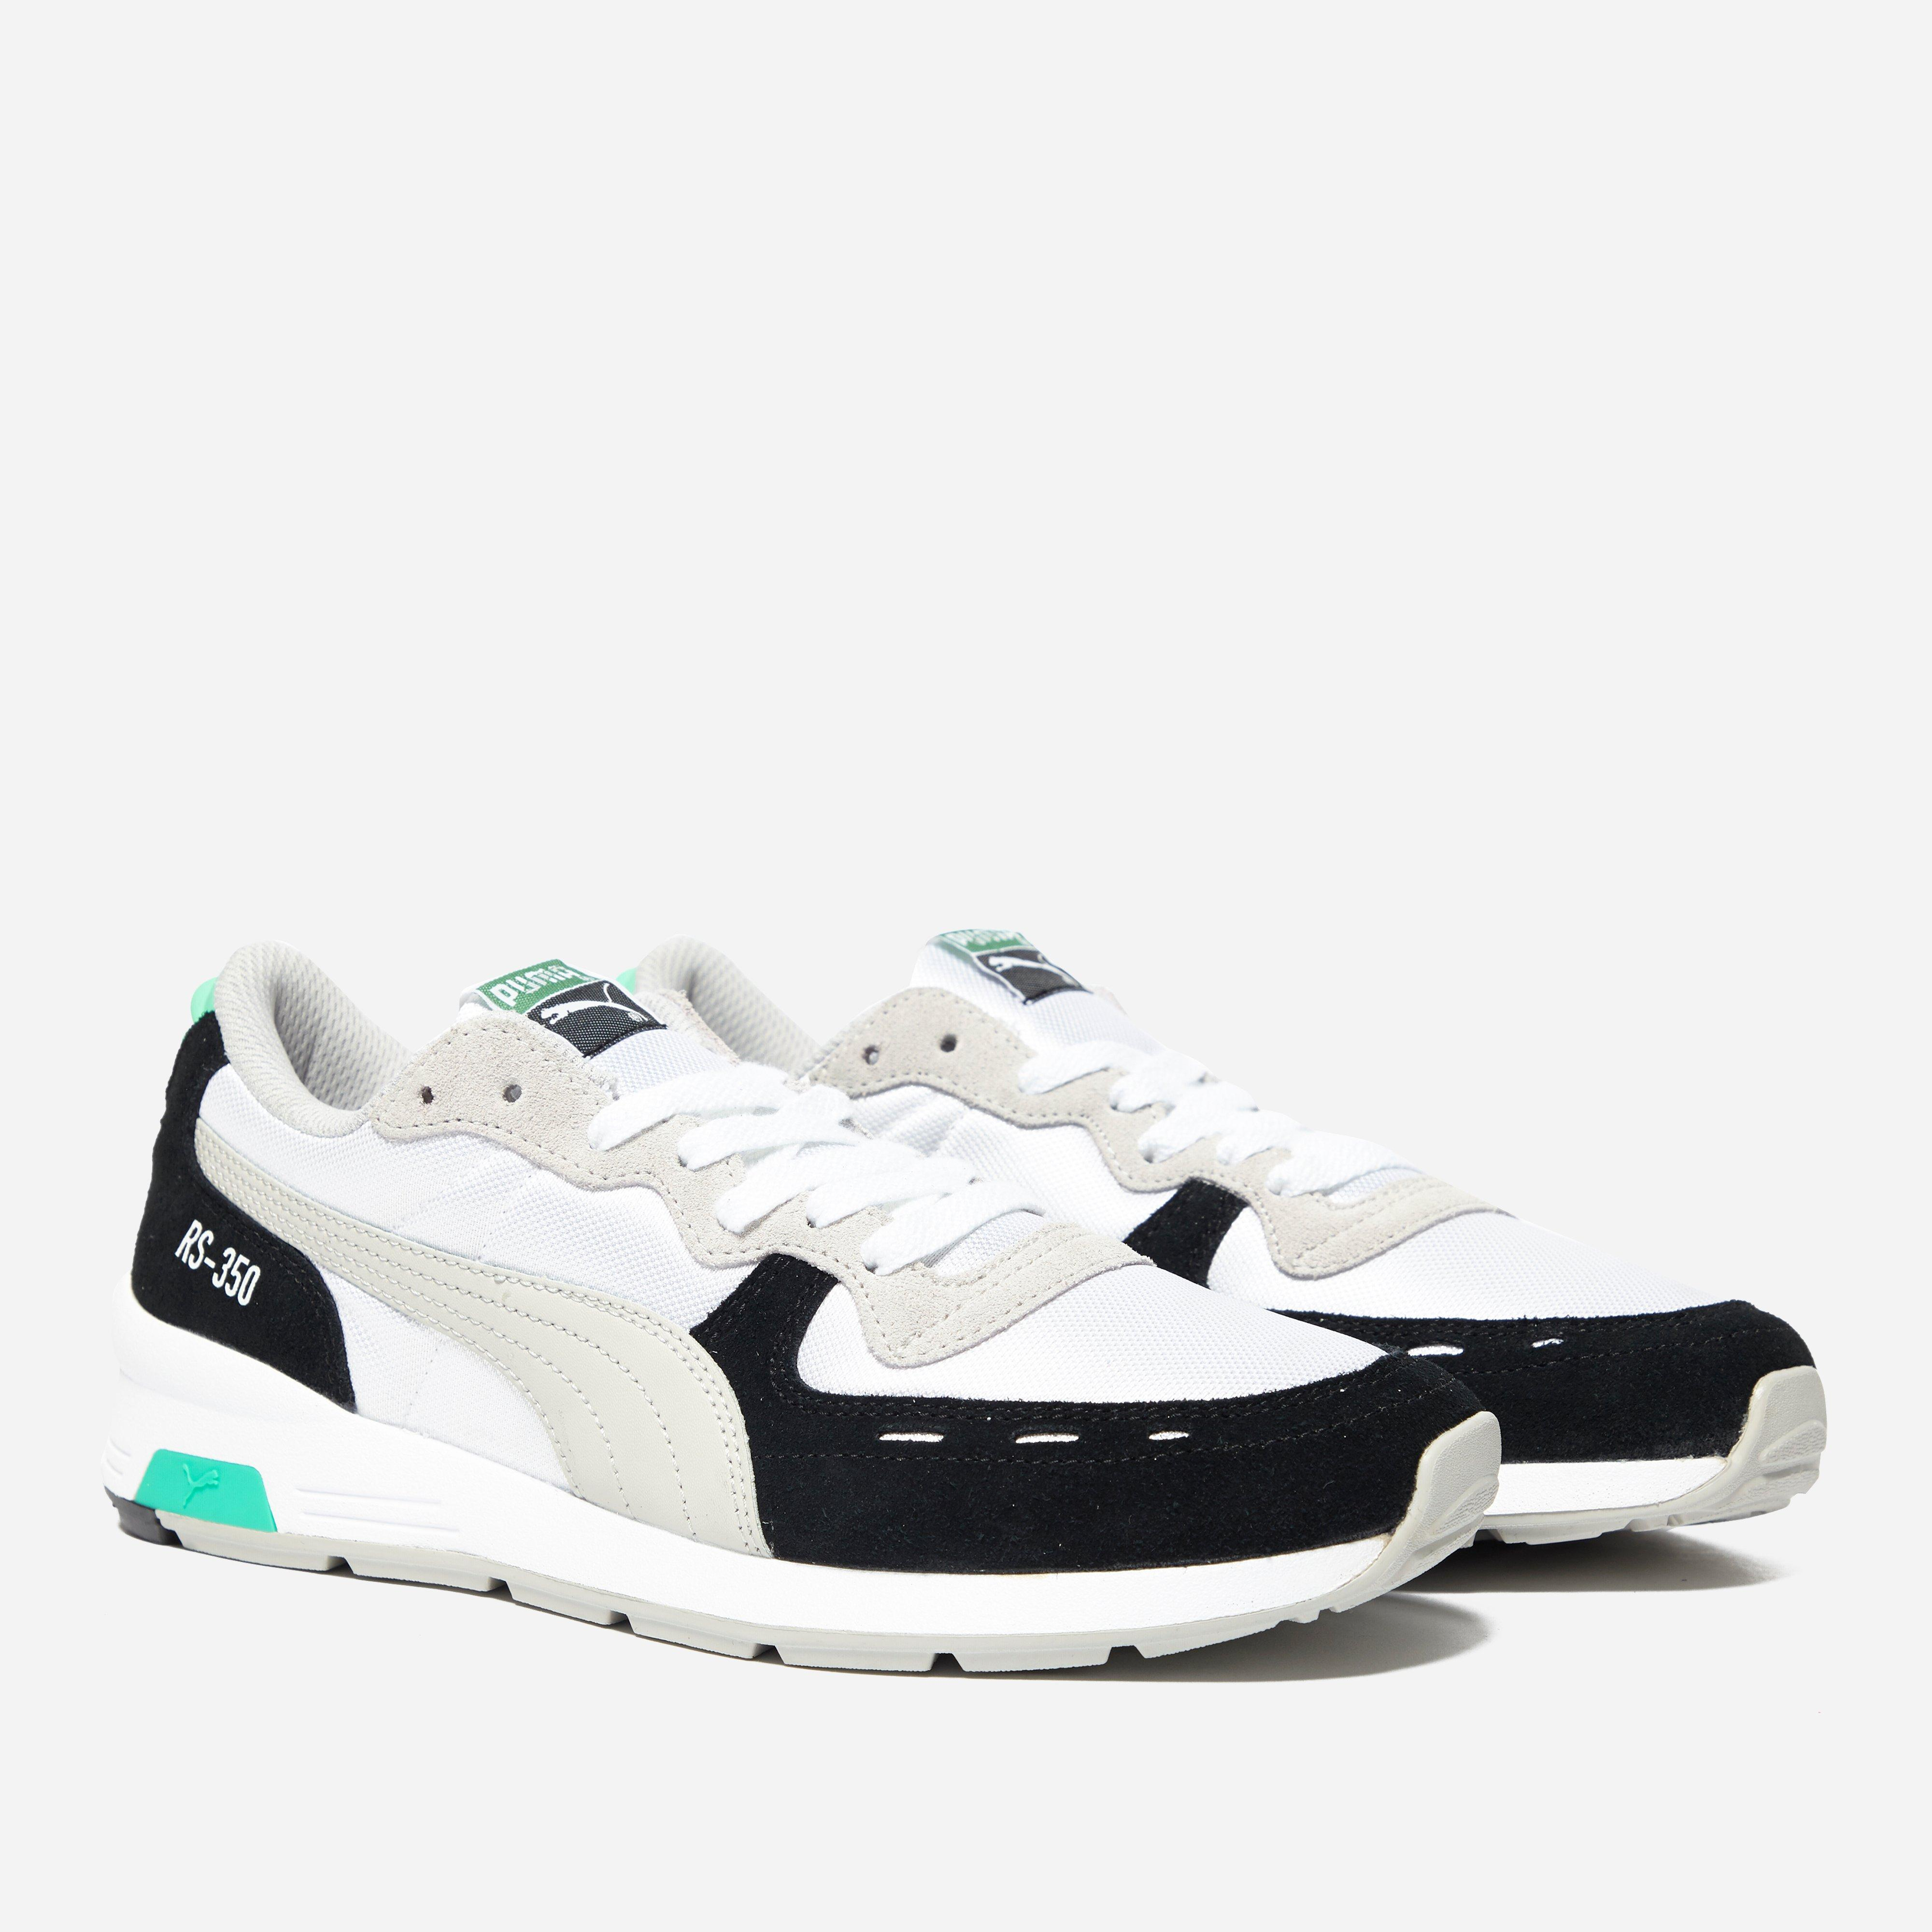 Puma RS-350 Re -Invention